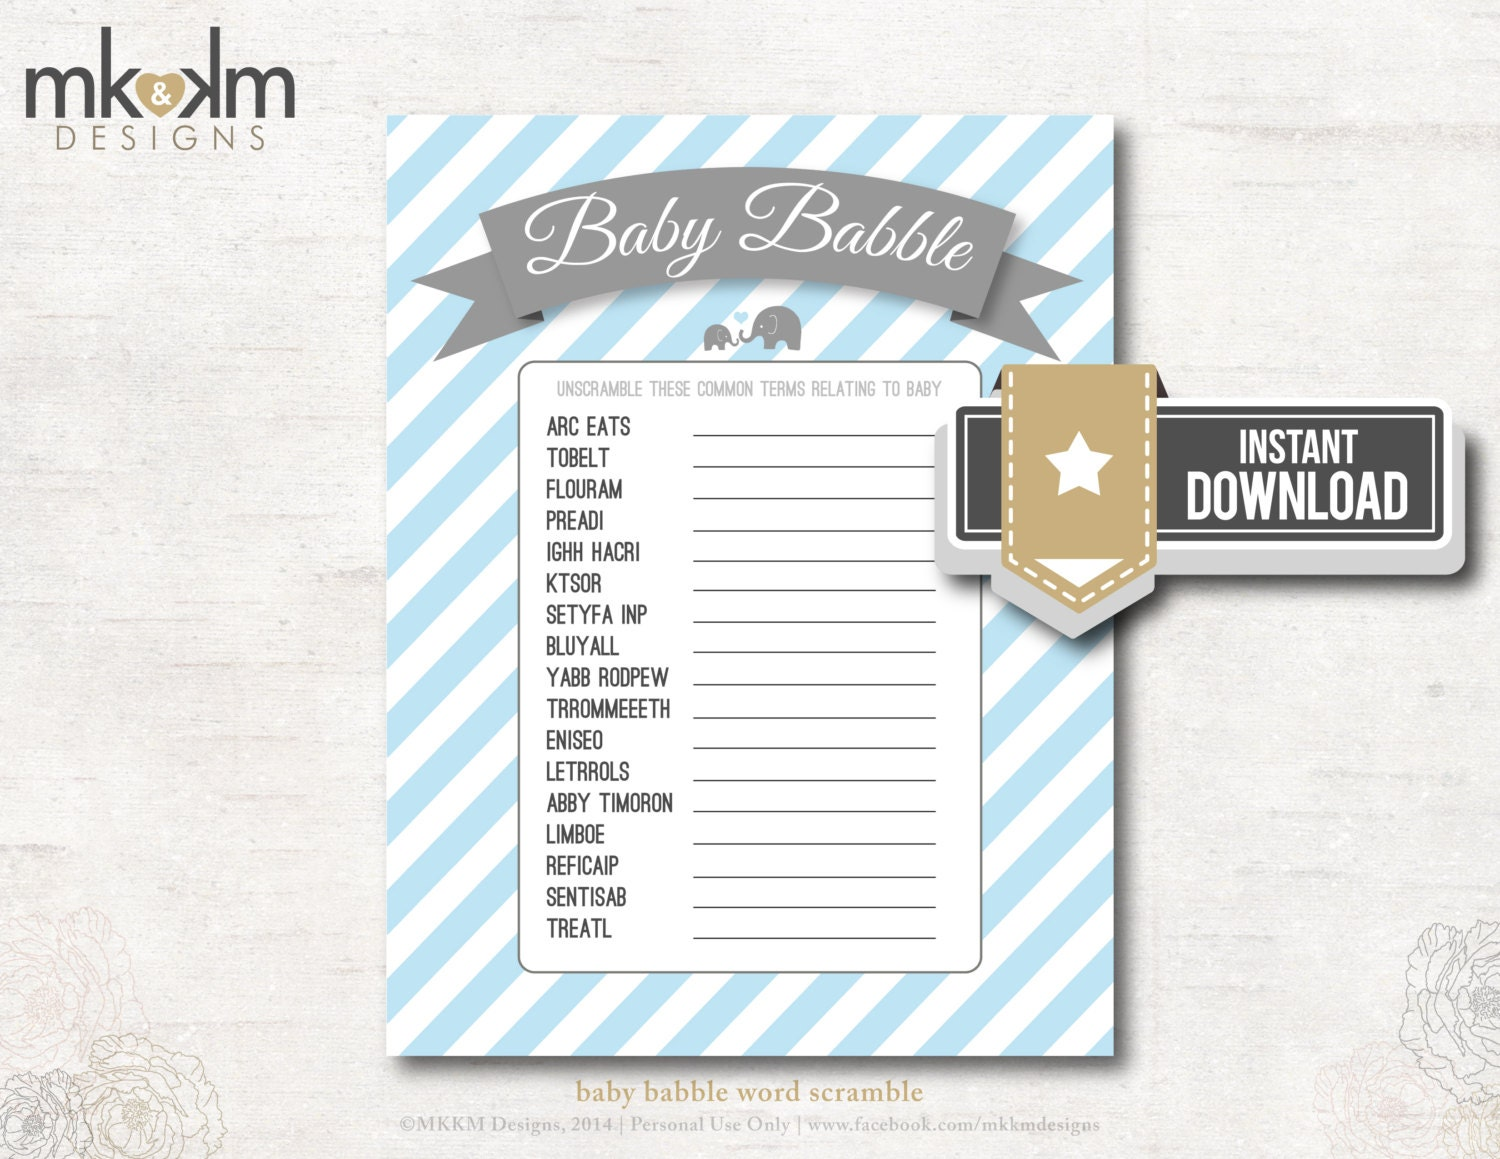 Baby Shower Word Scramble Black And White Baby babble word scramble ...